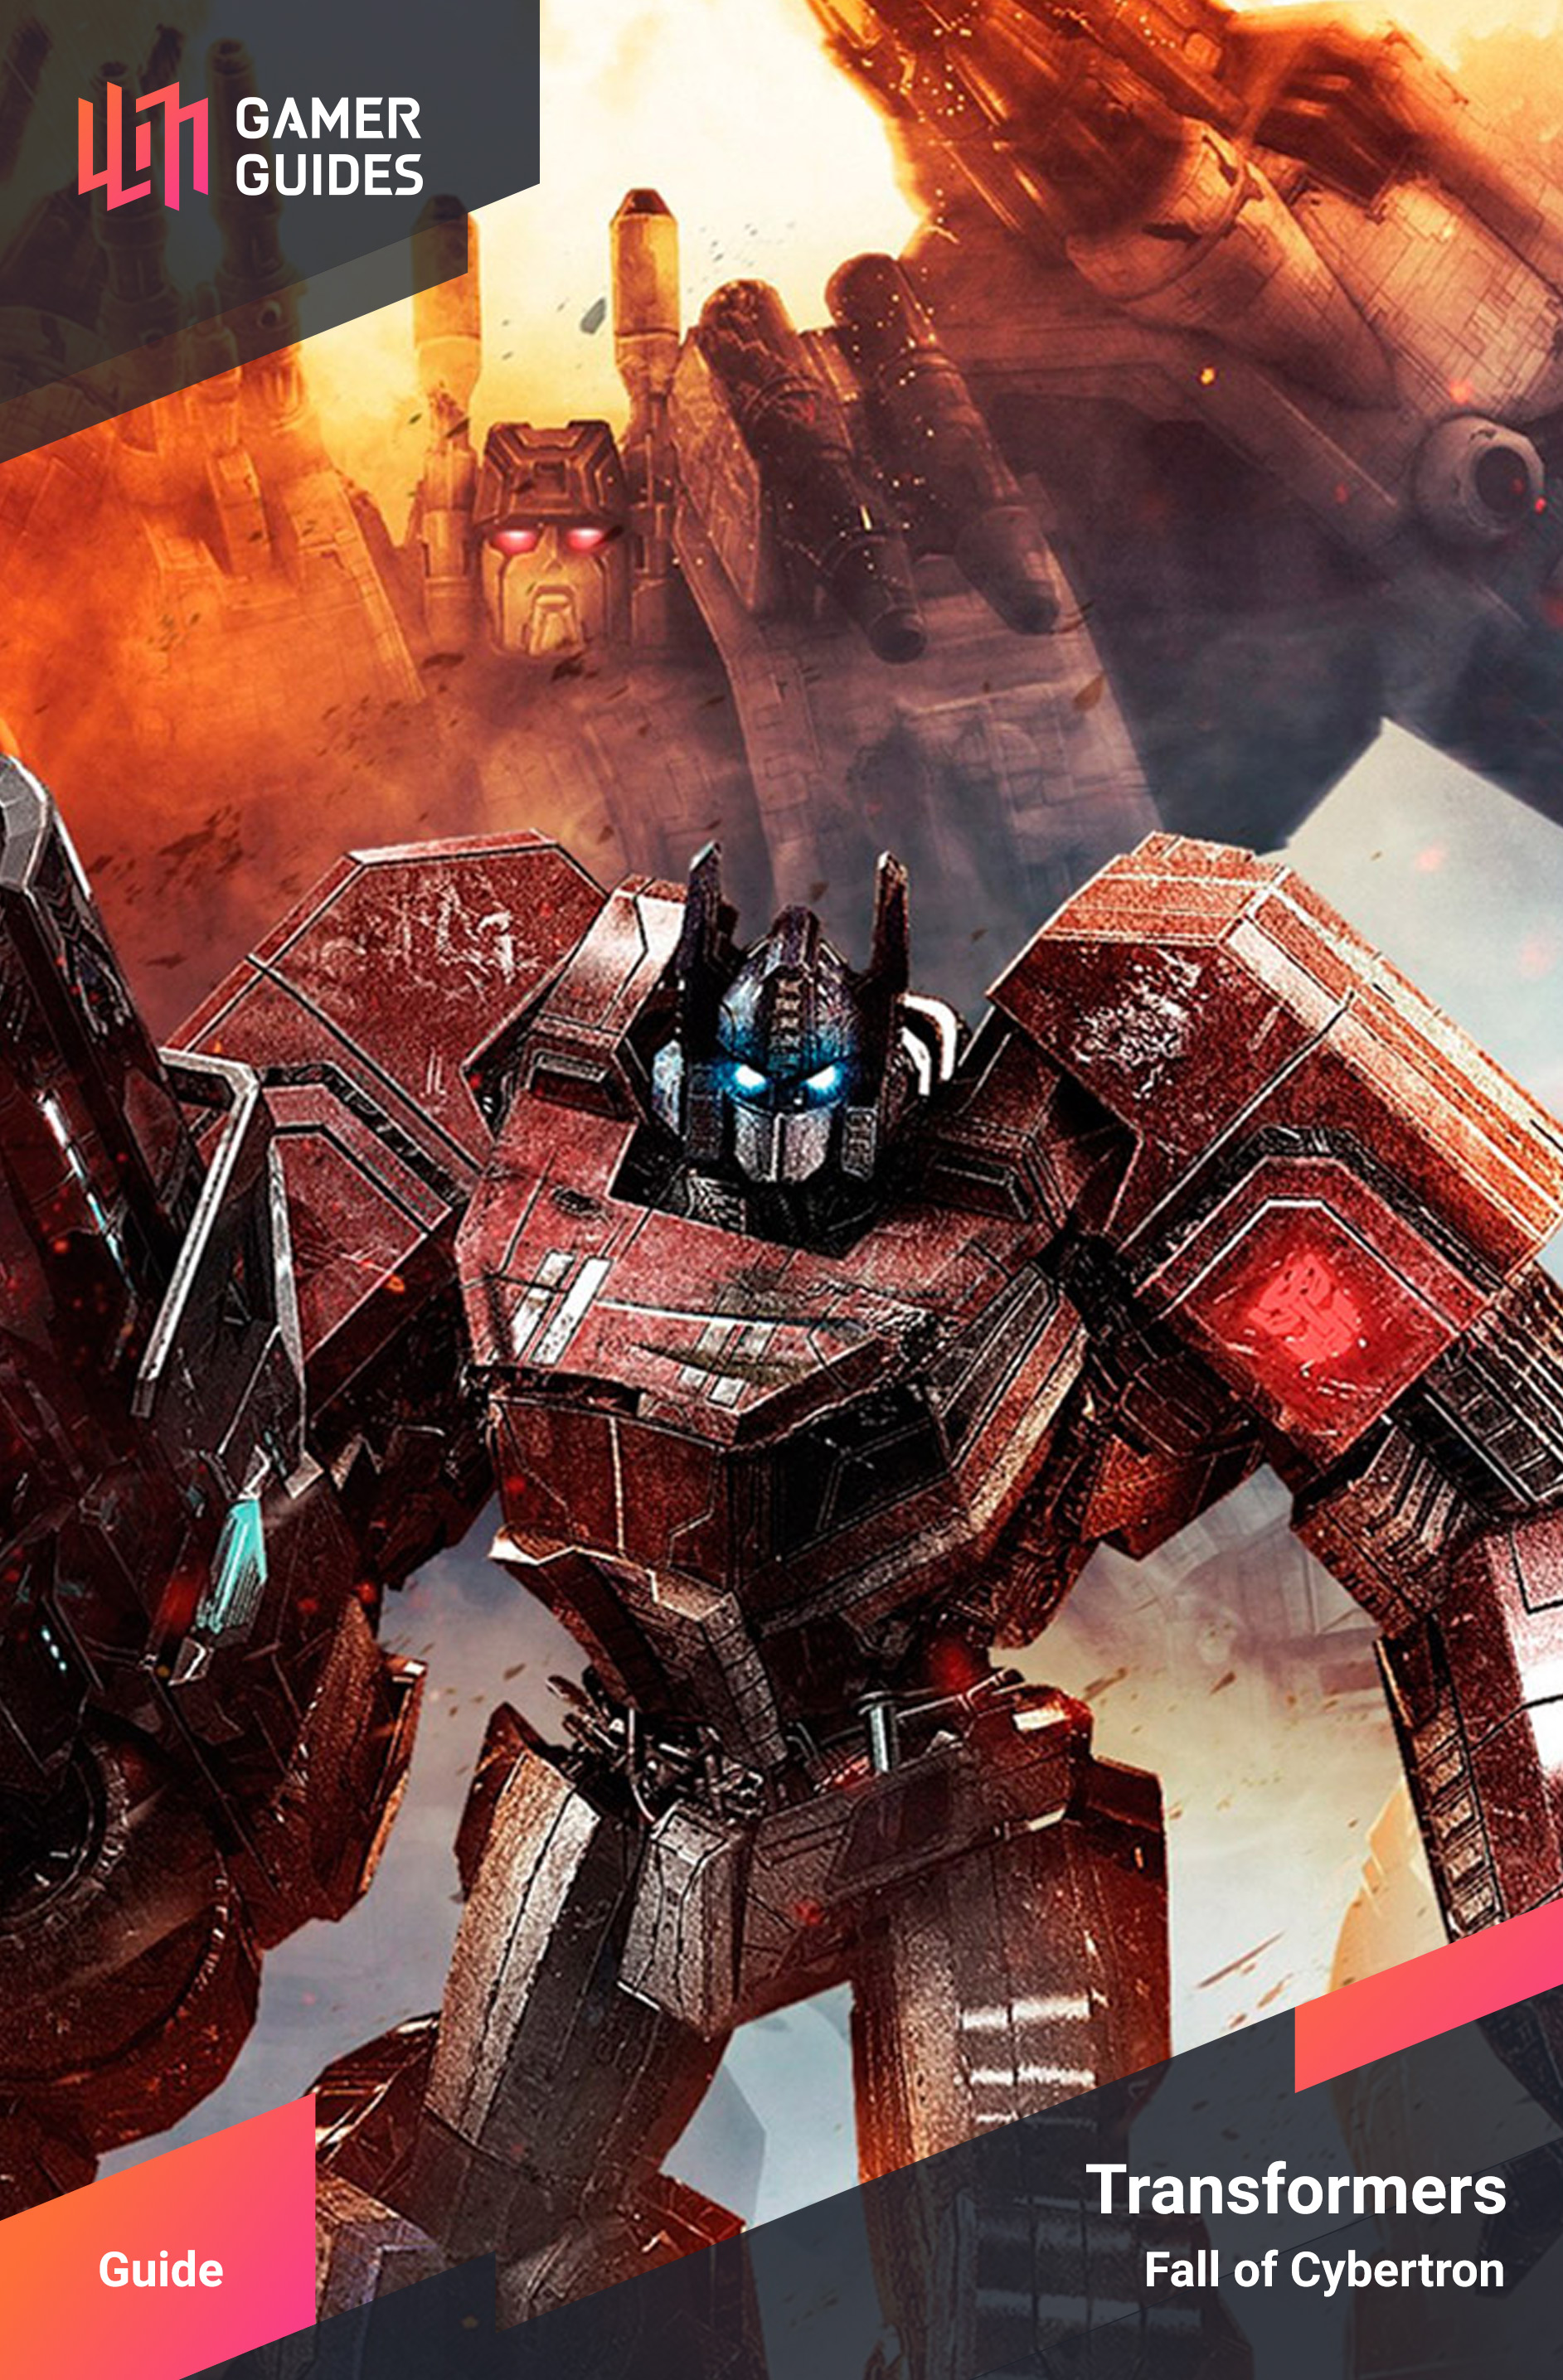 Transformers: Fall of Cybertron | Gamer Guides